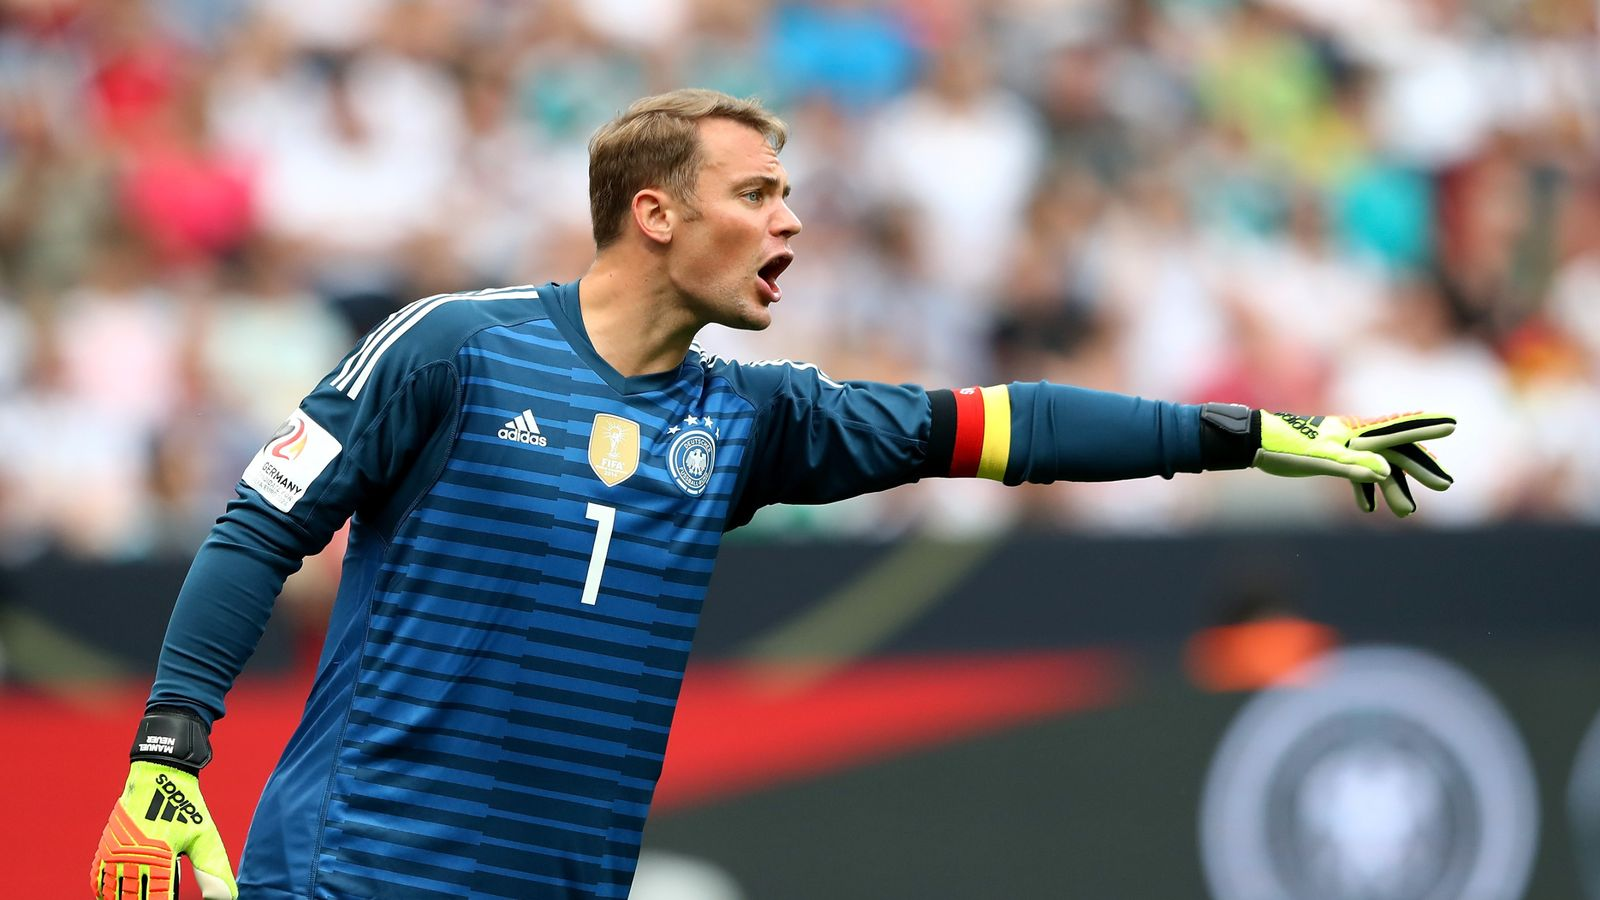 Germany's Manuel Neuer says every game is a final after Mexico defeat | Football News | Sky Sports